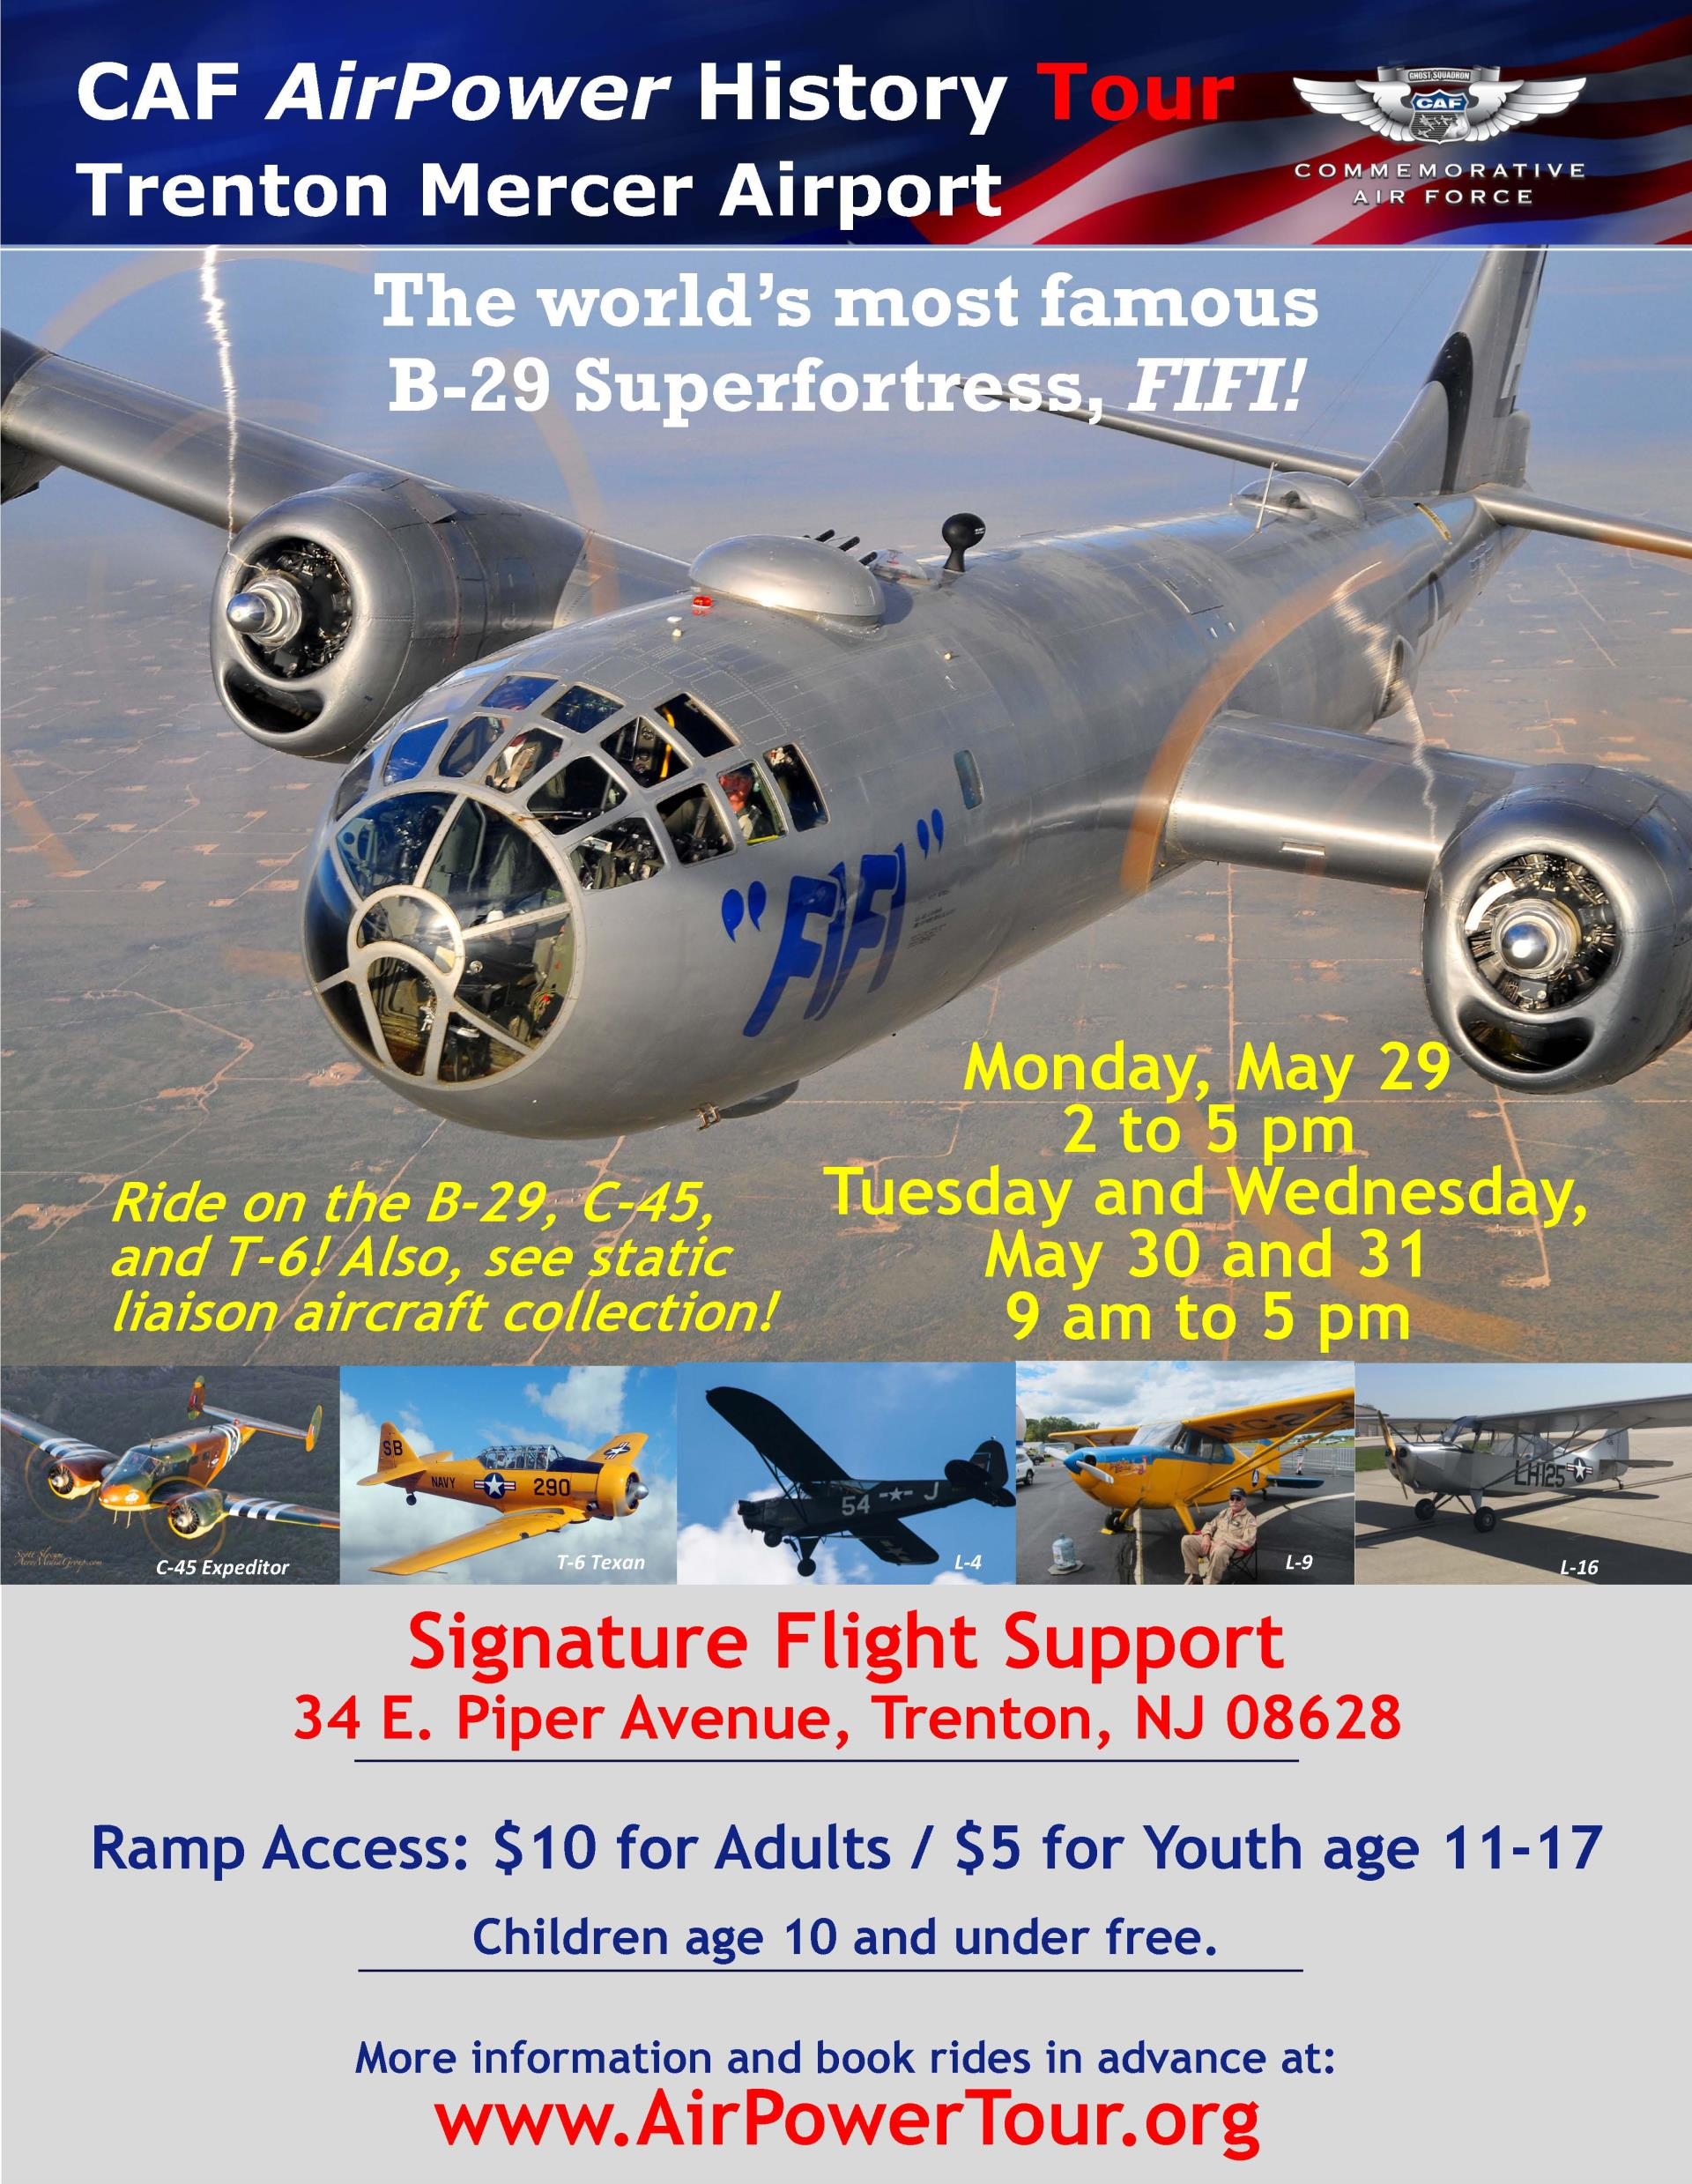 Iconic Boeing B-29 Superfortress will visit Trenton Mercer